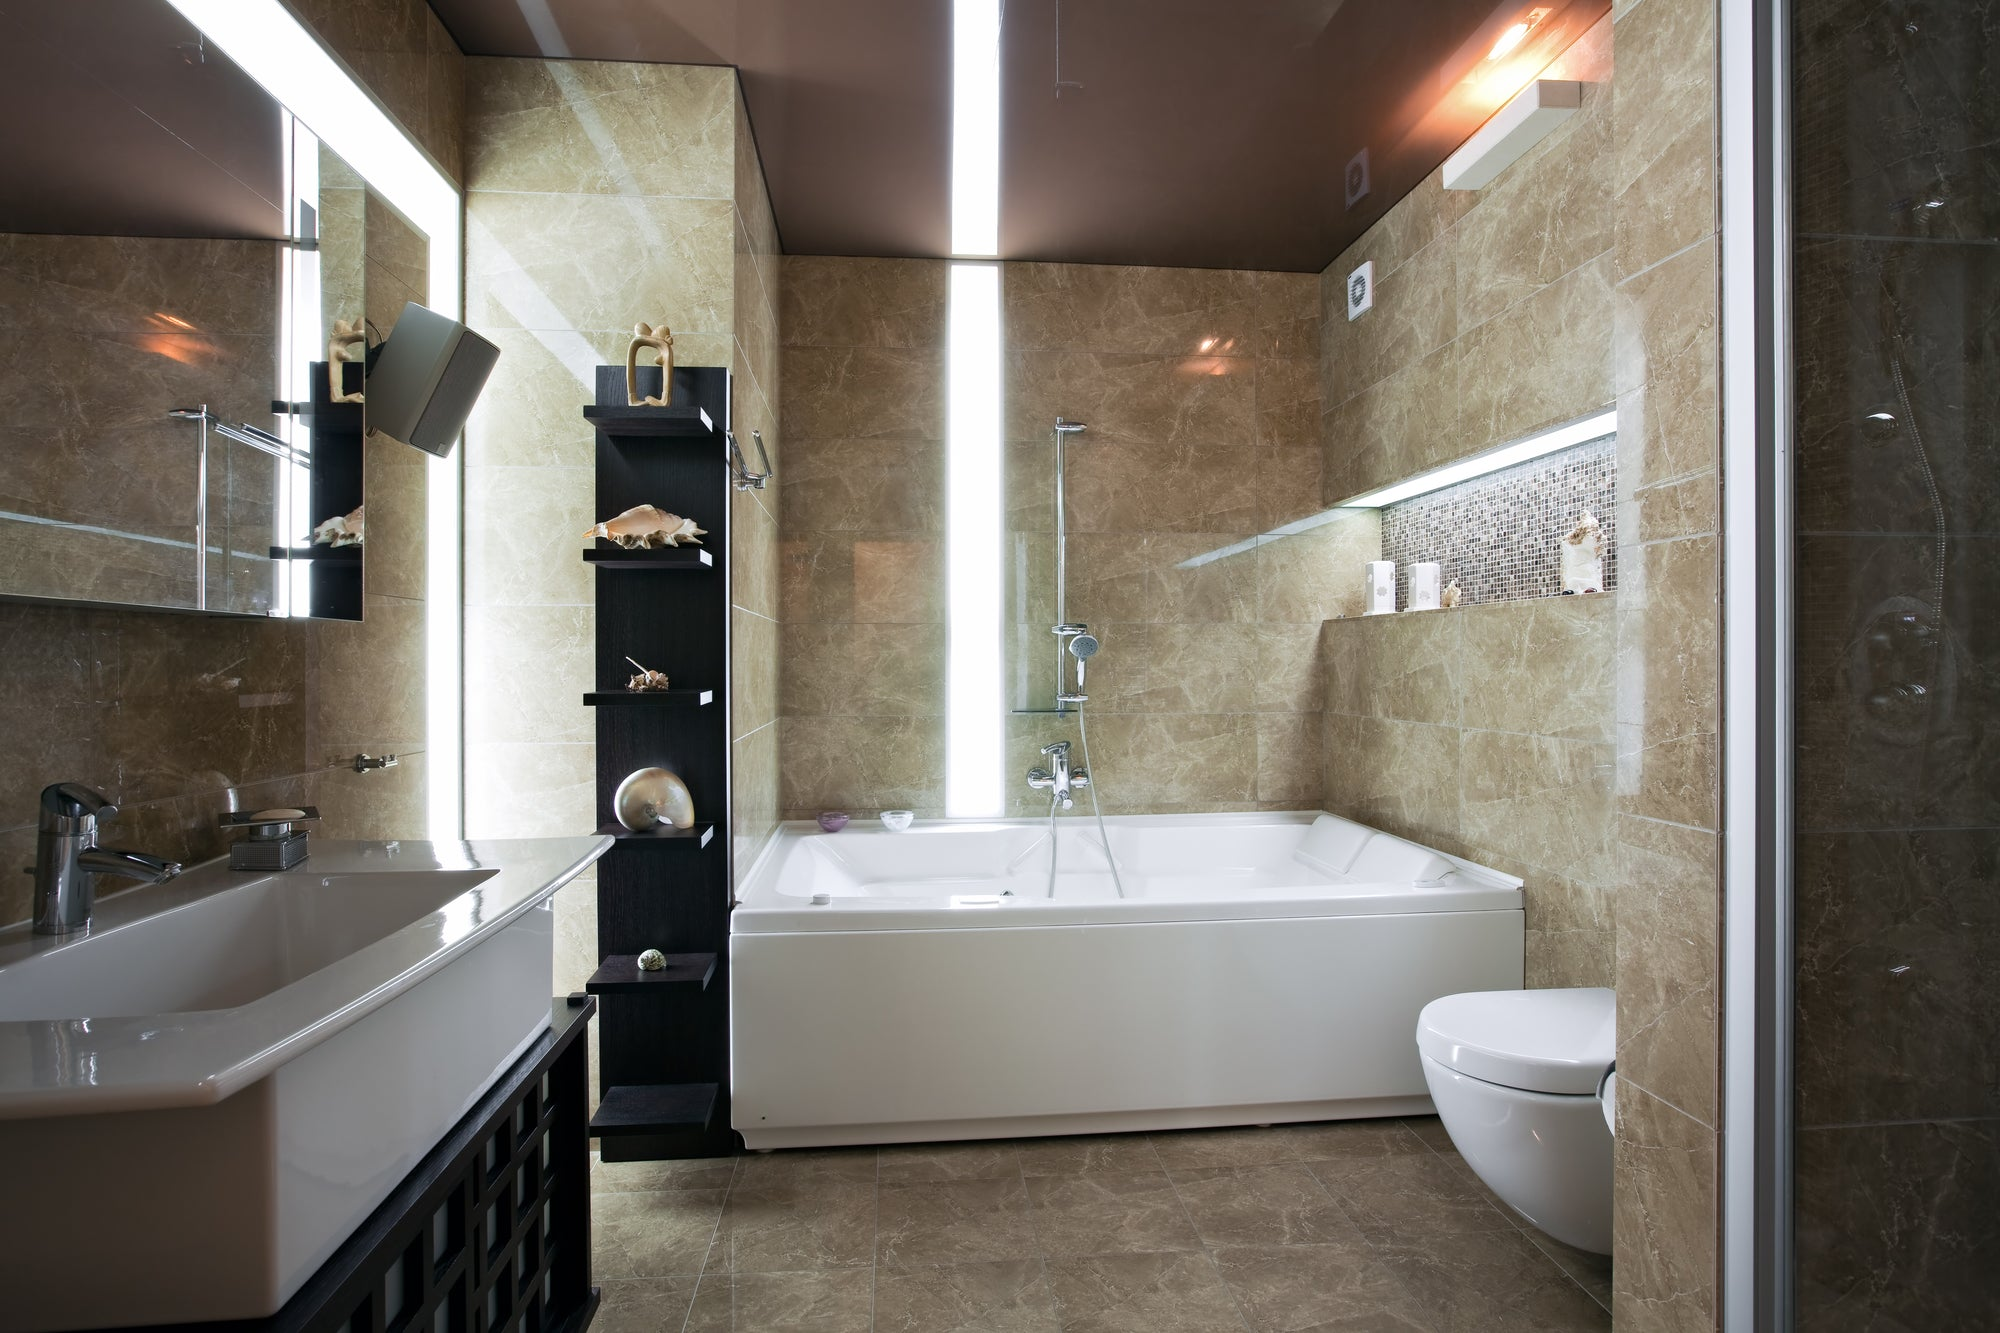 How To Smartly Upgrade Your Bathroom For Less